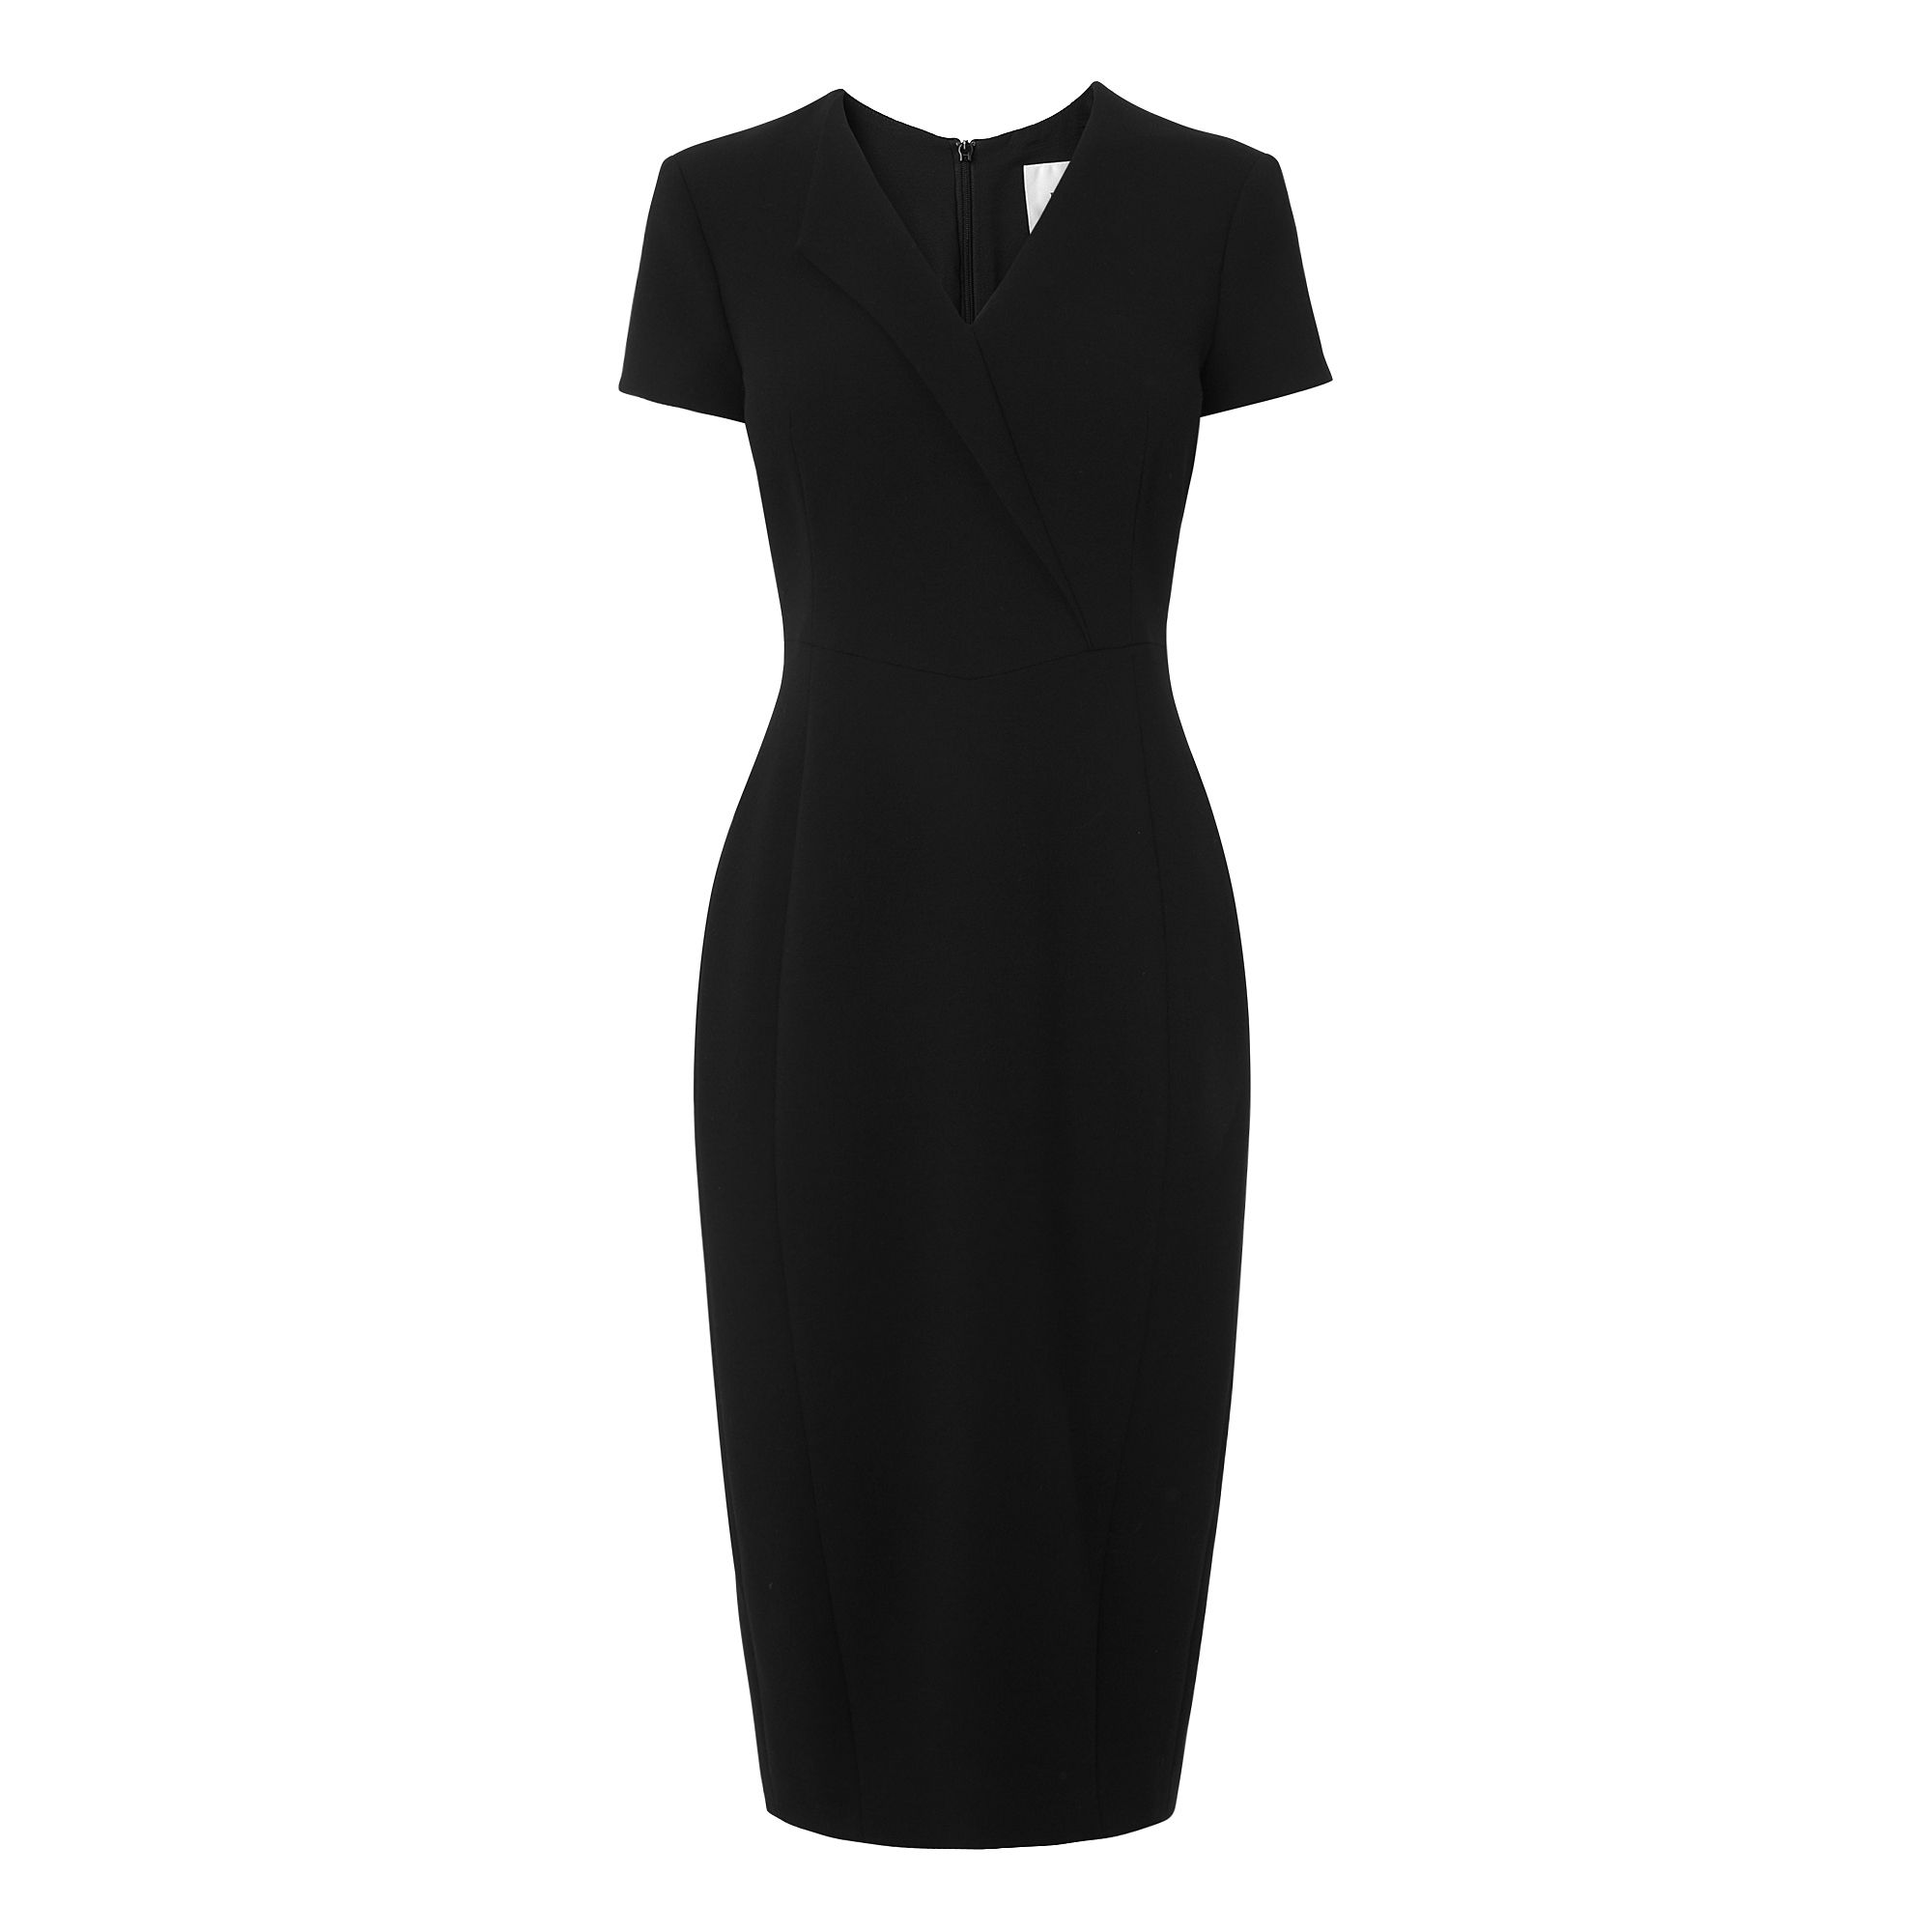 L.K. Bennett Eline Polyester Viscose Elastane Dress, Black